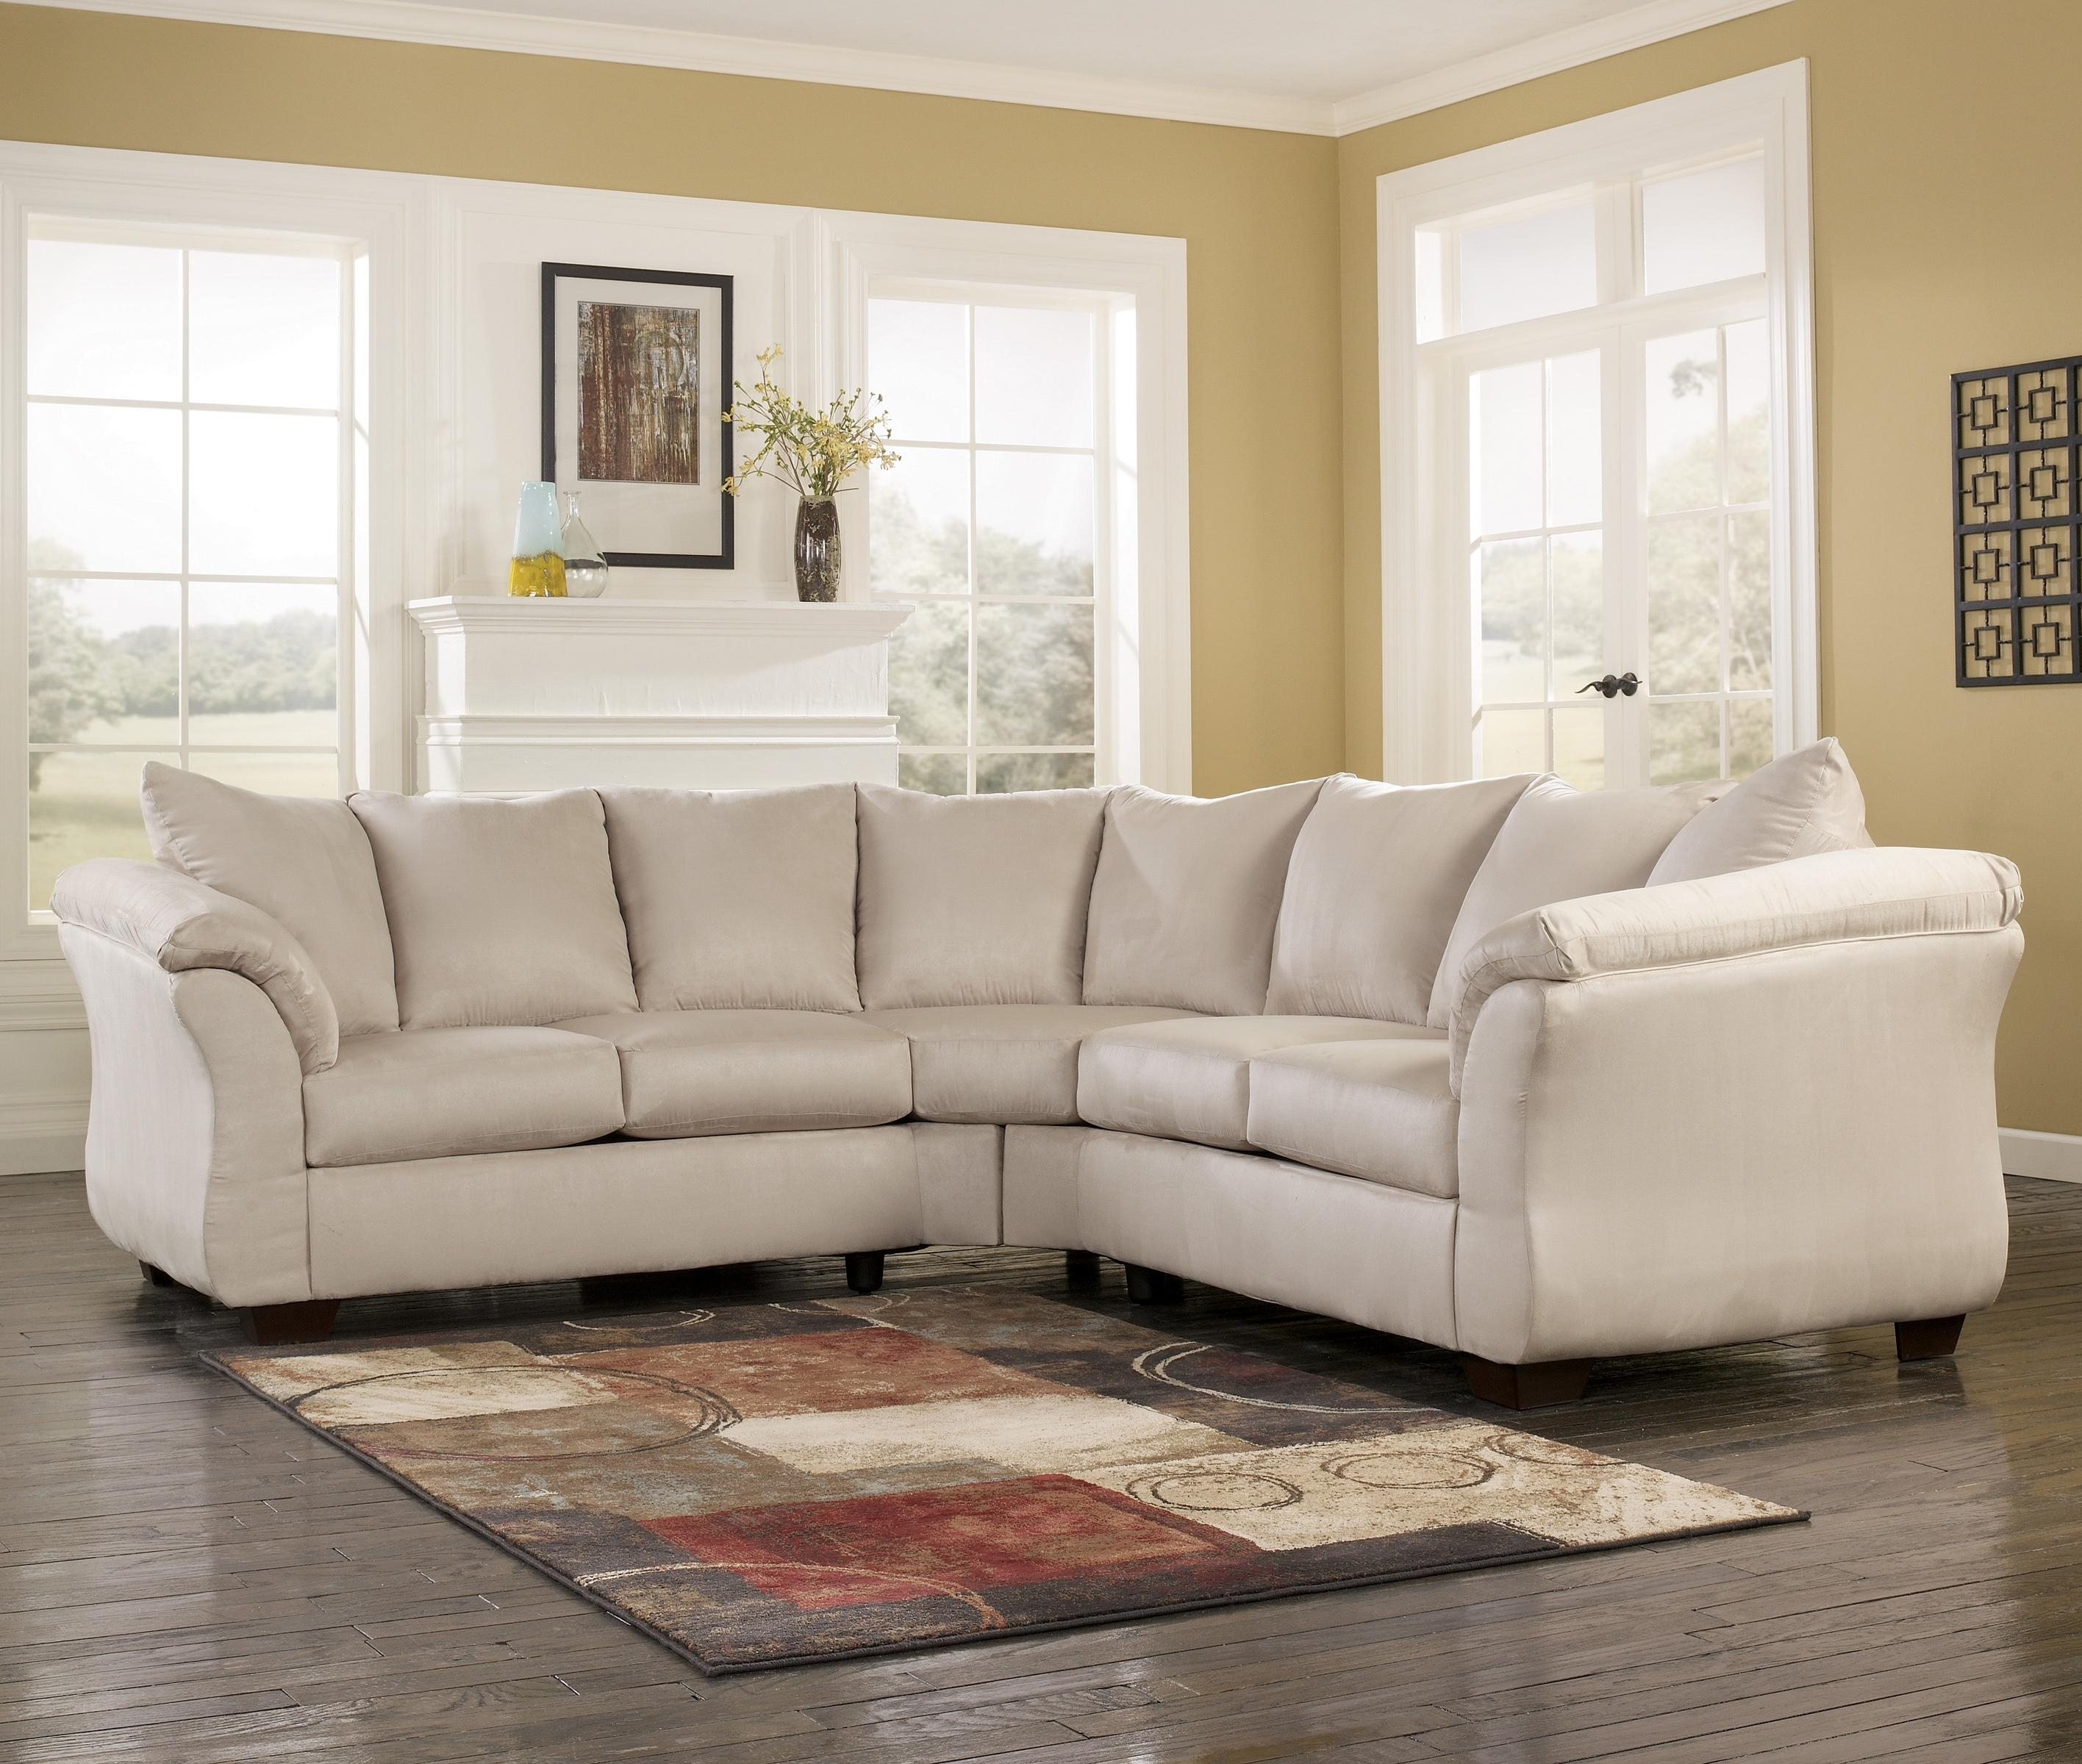 Furniture El Paso Tx – Home Design Ideas And Pictures Regarding El Paso Texas Sectional Sofas (View 3 of 10)